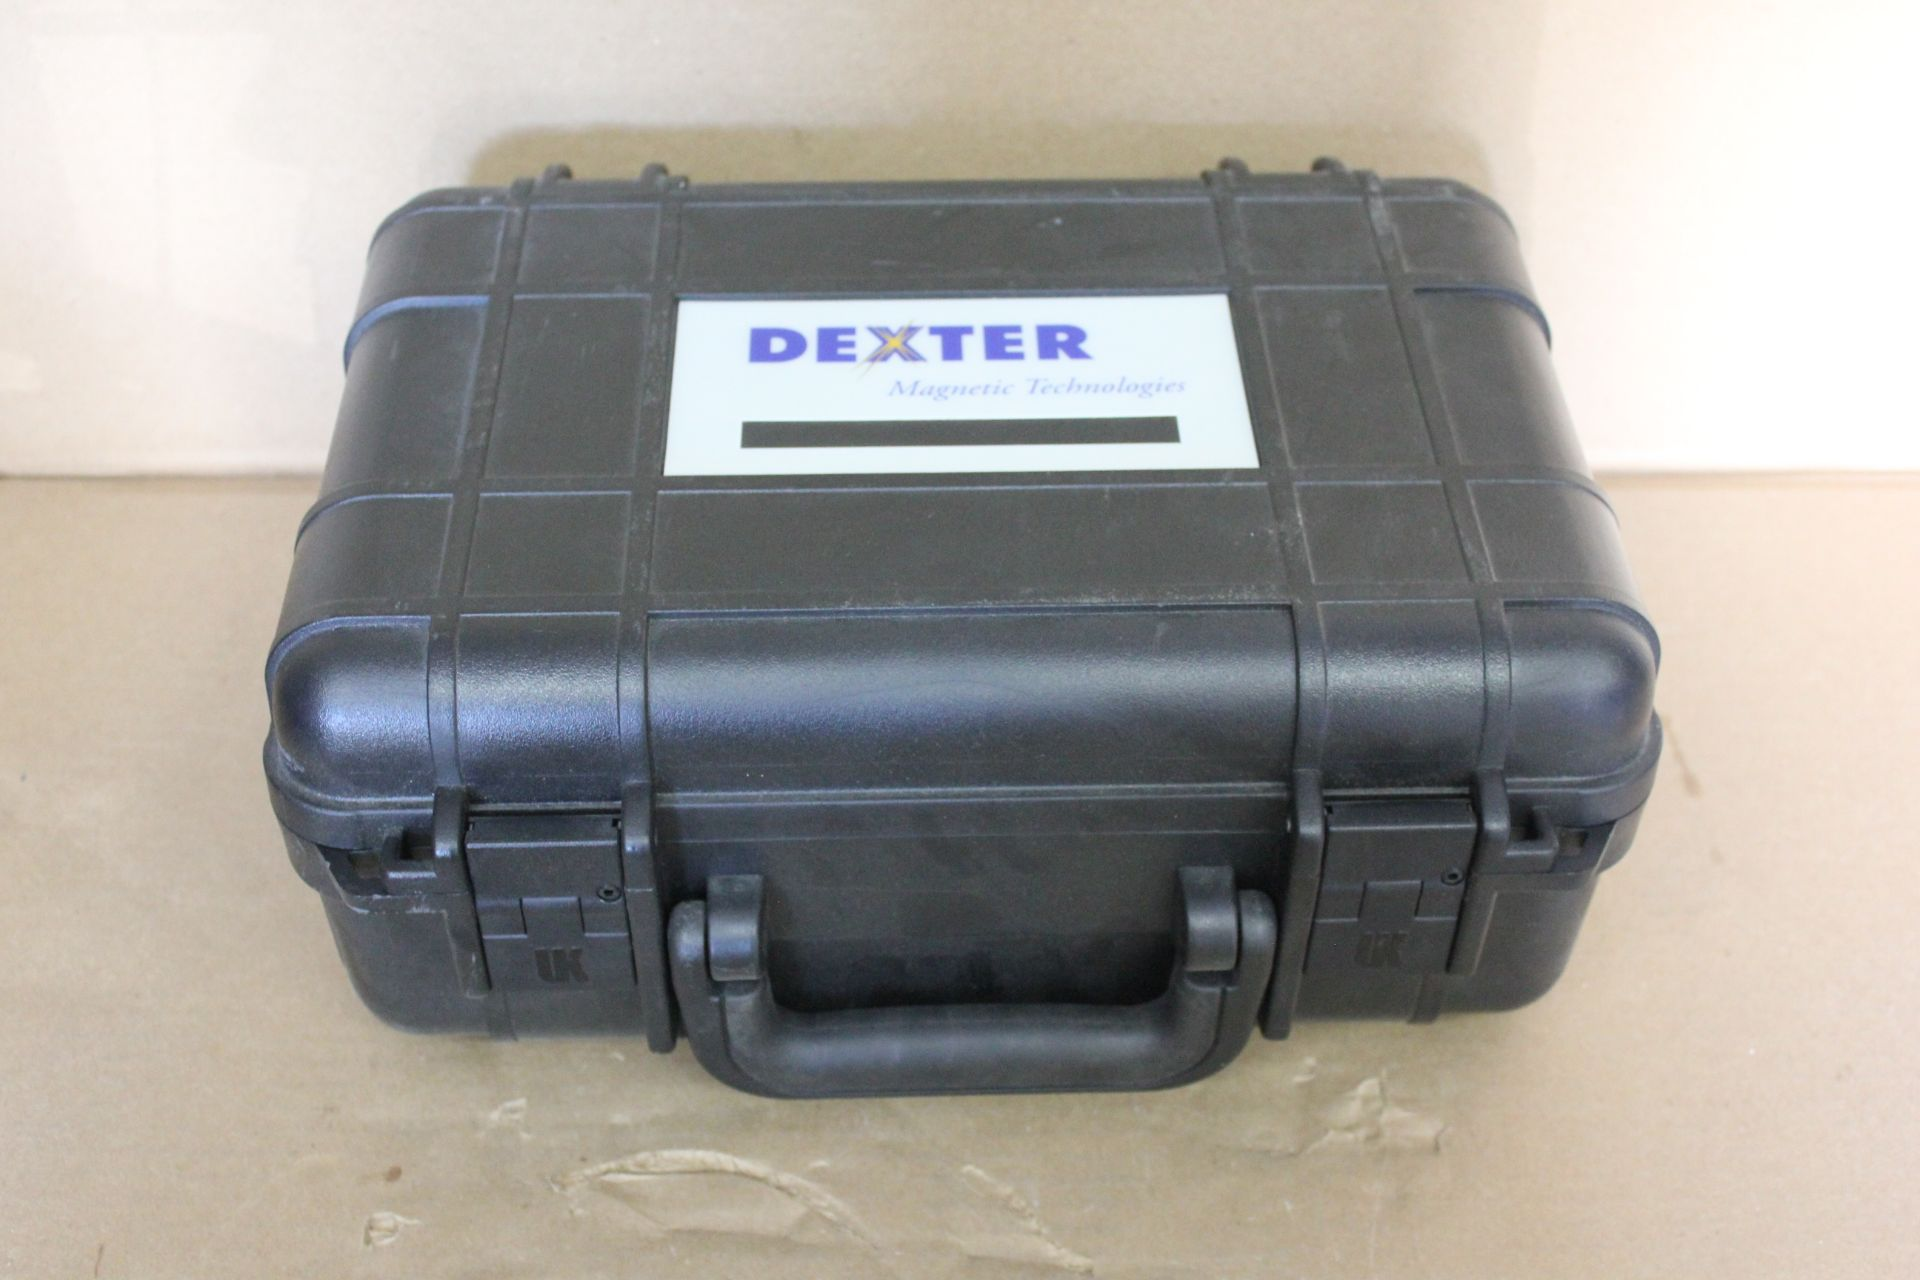 DEXTER MAGNETIC TECHNOLOGIES MAGNET AND HARD CASE